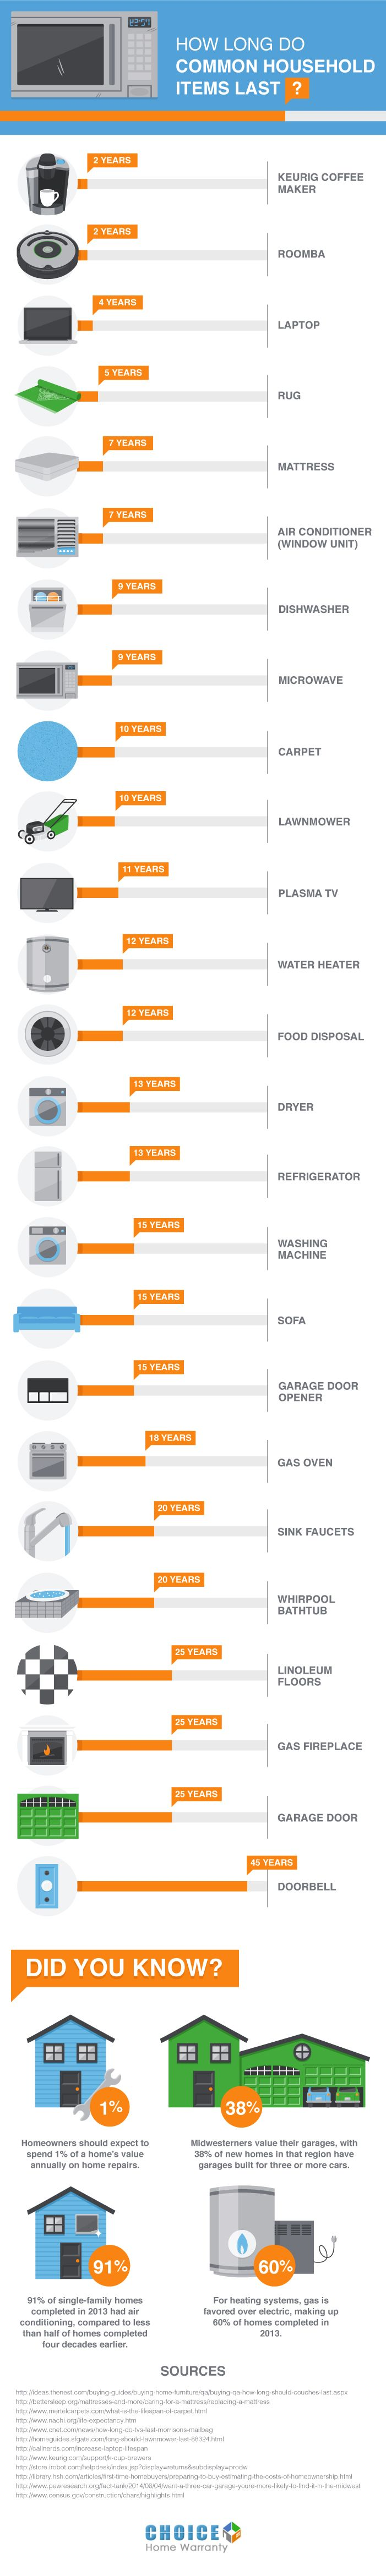 How long will your furniture and common household appliances last? Find out in this handy infographic.